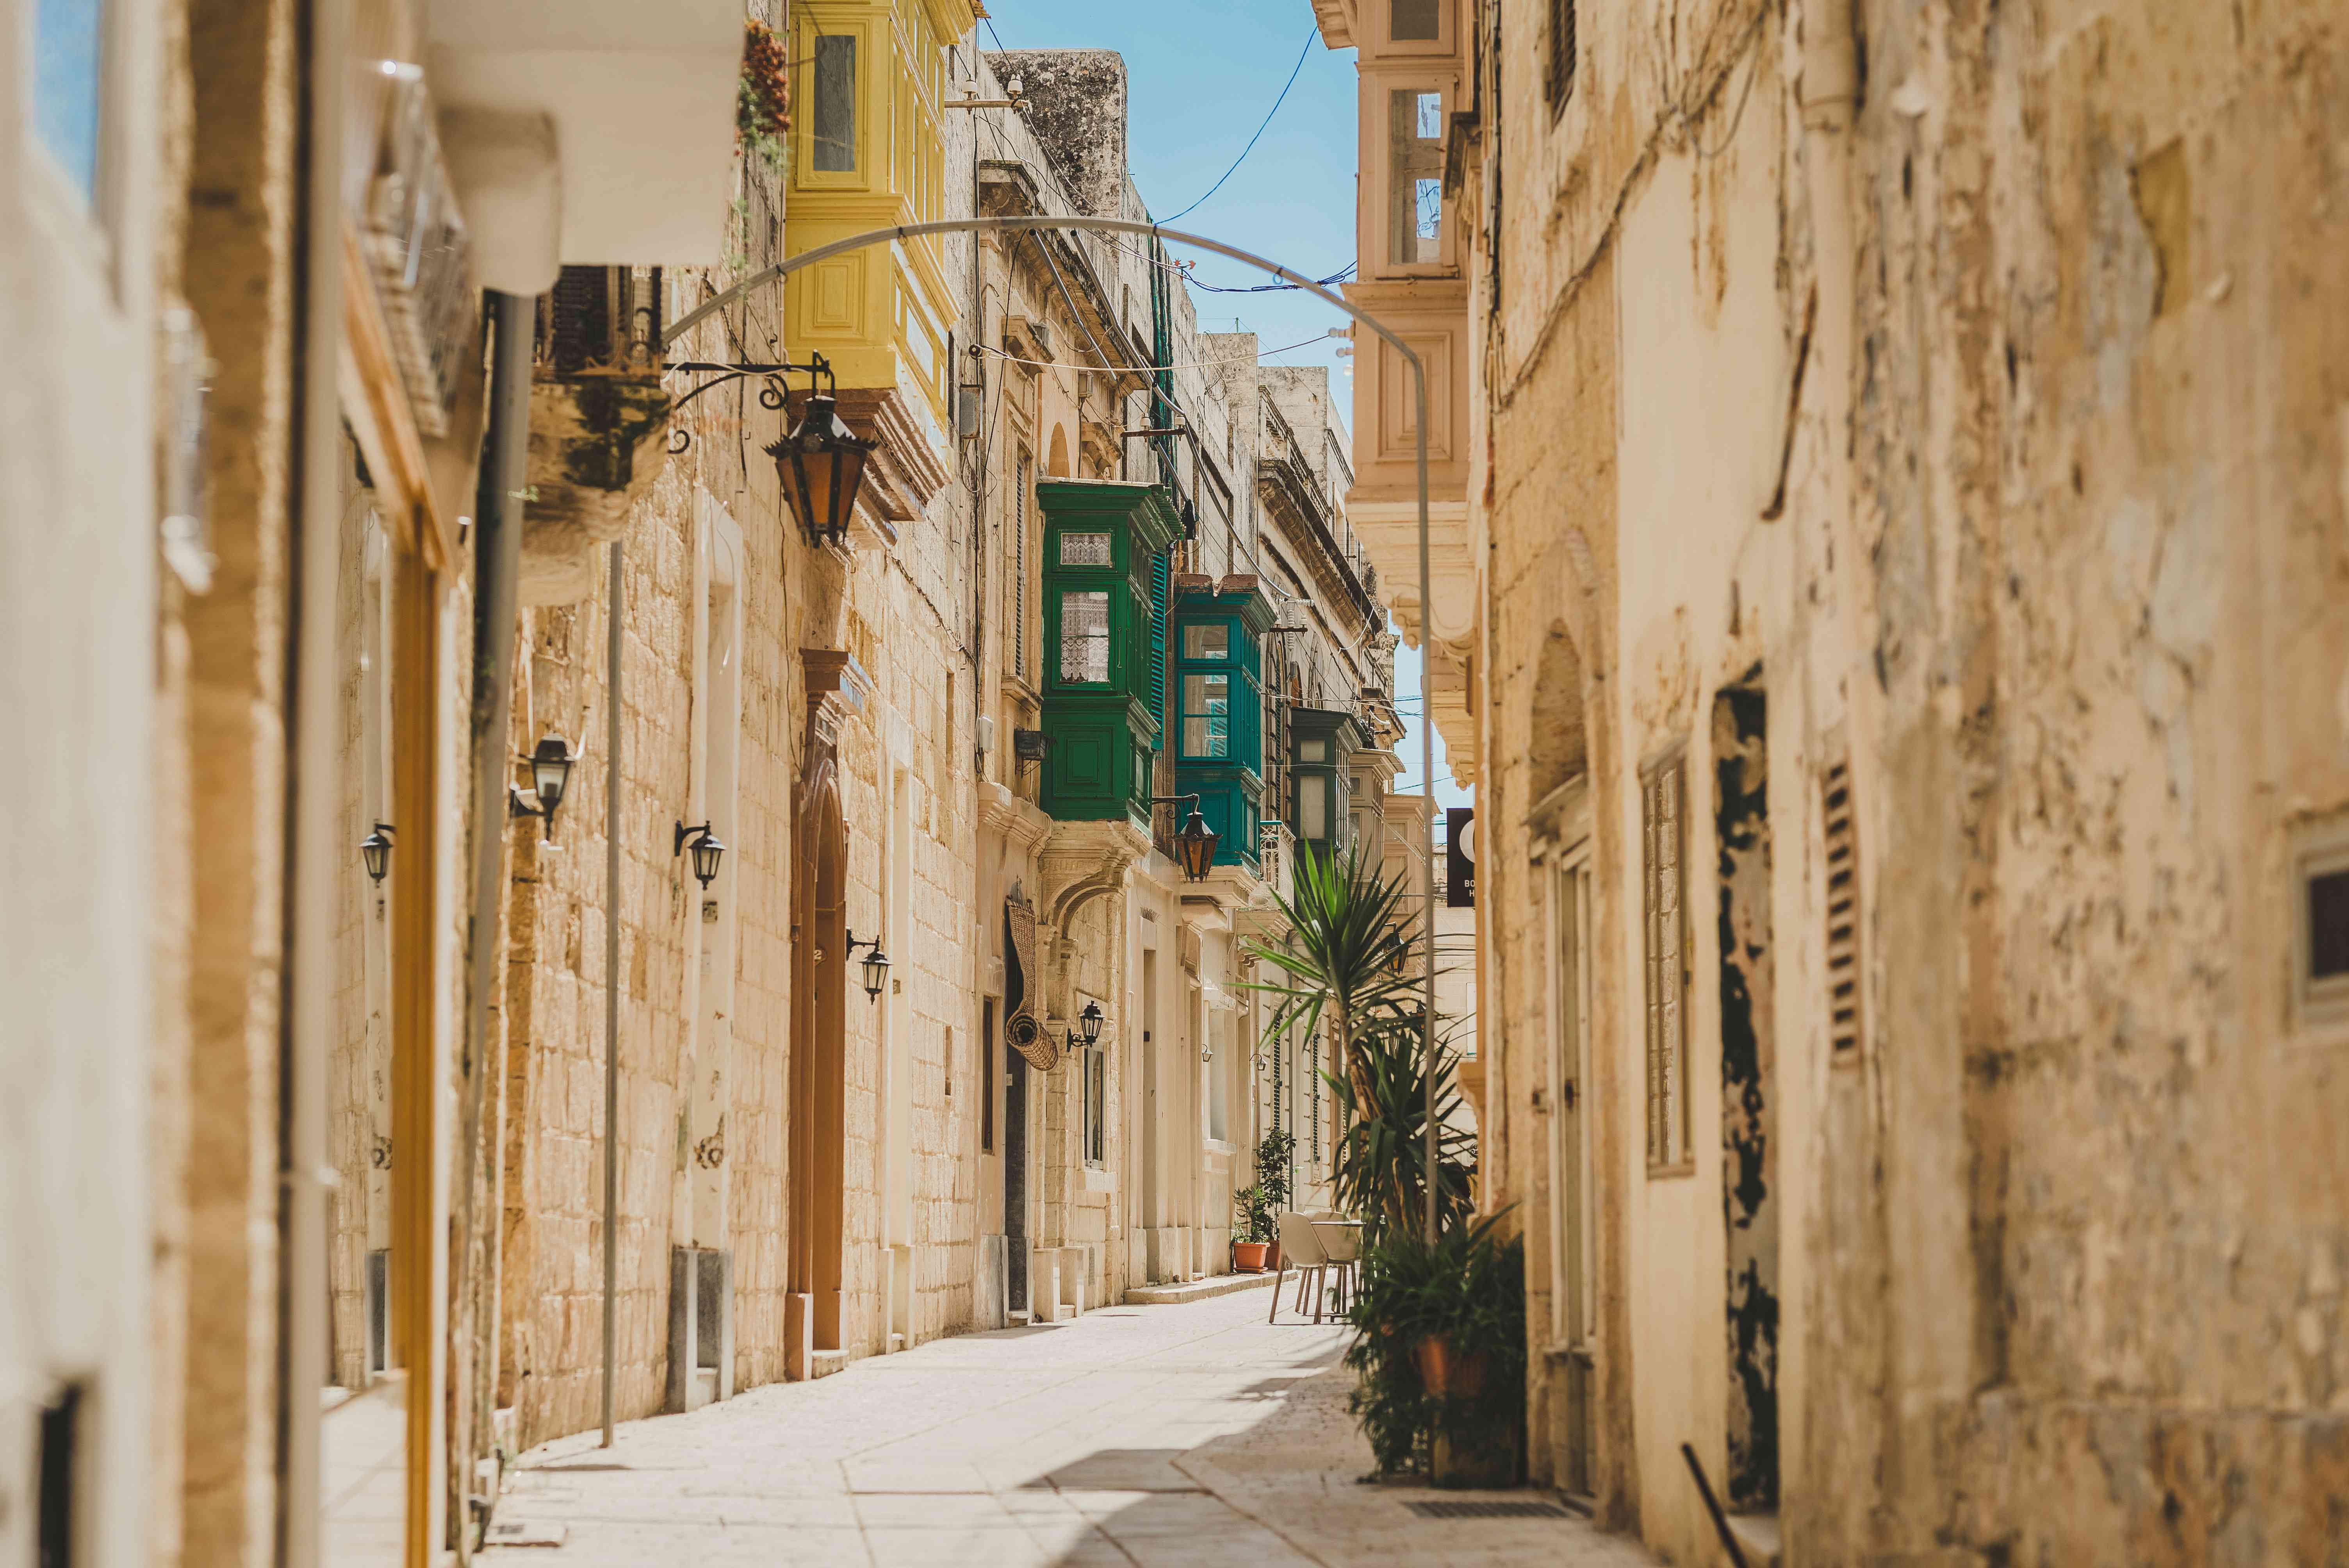 Alleyway in the Mdina